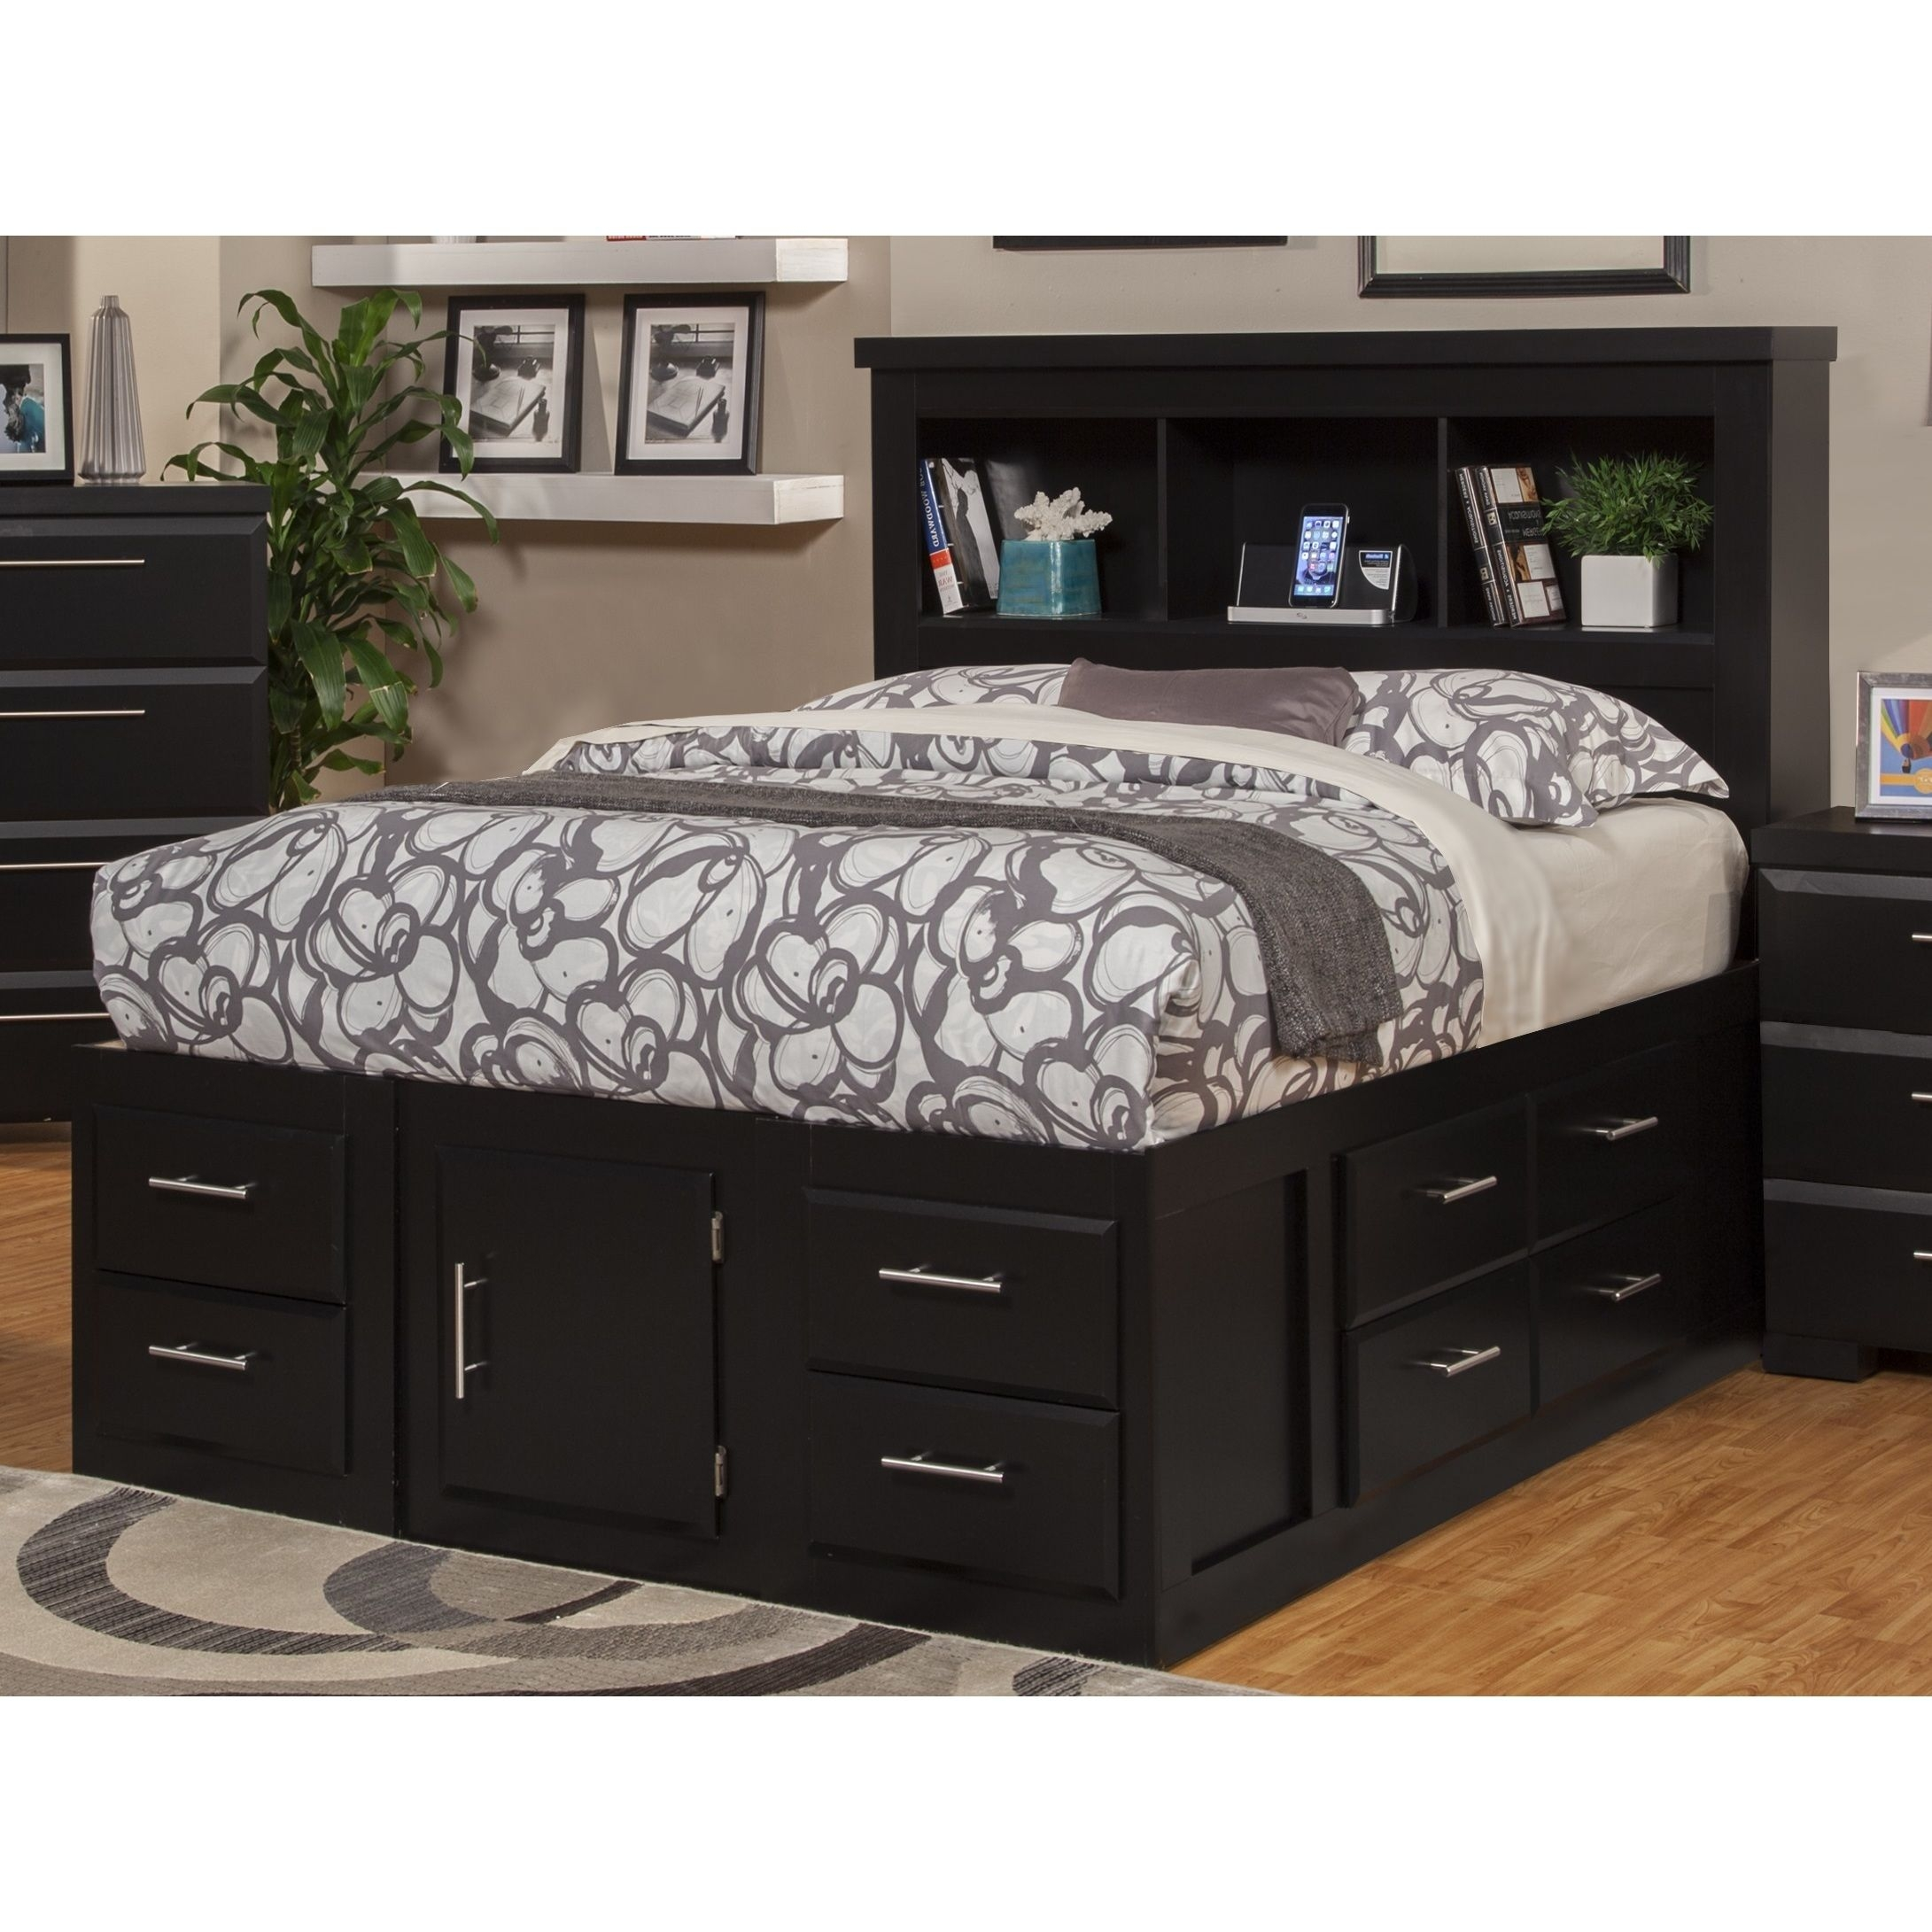 King Size Bookcase Headboard   Foter Smooth Black Bookcase Headboard